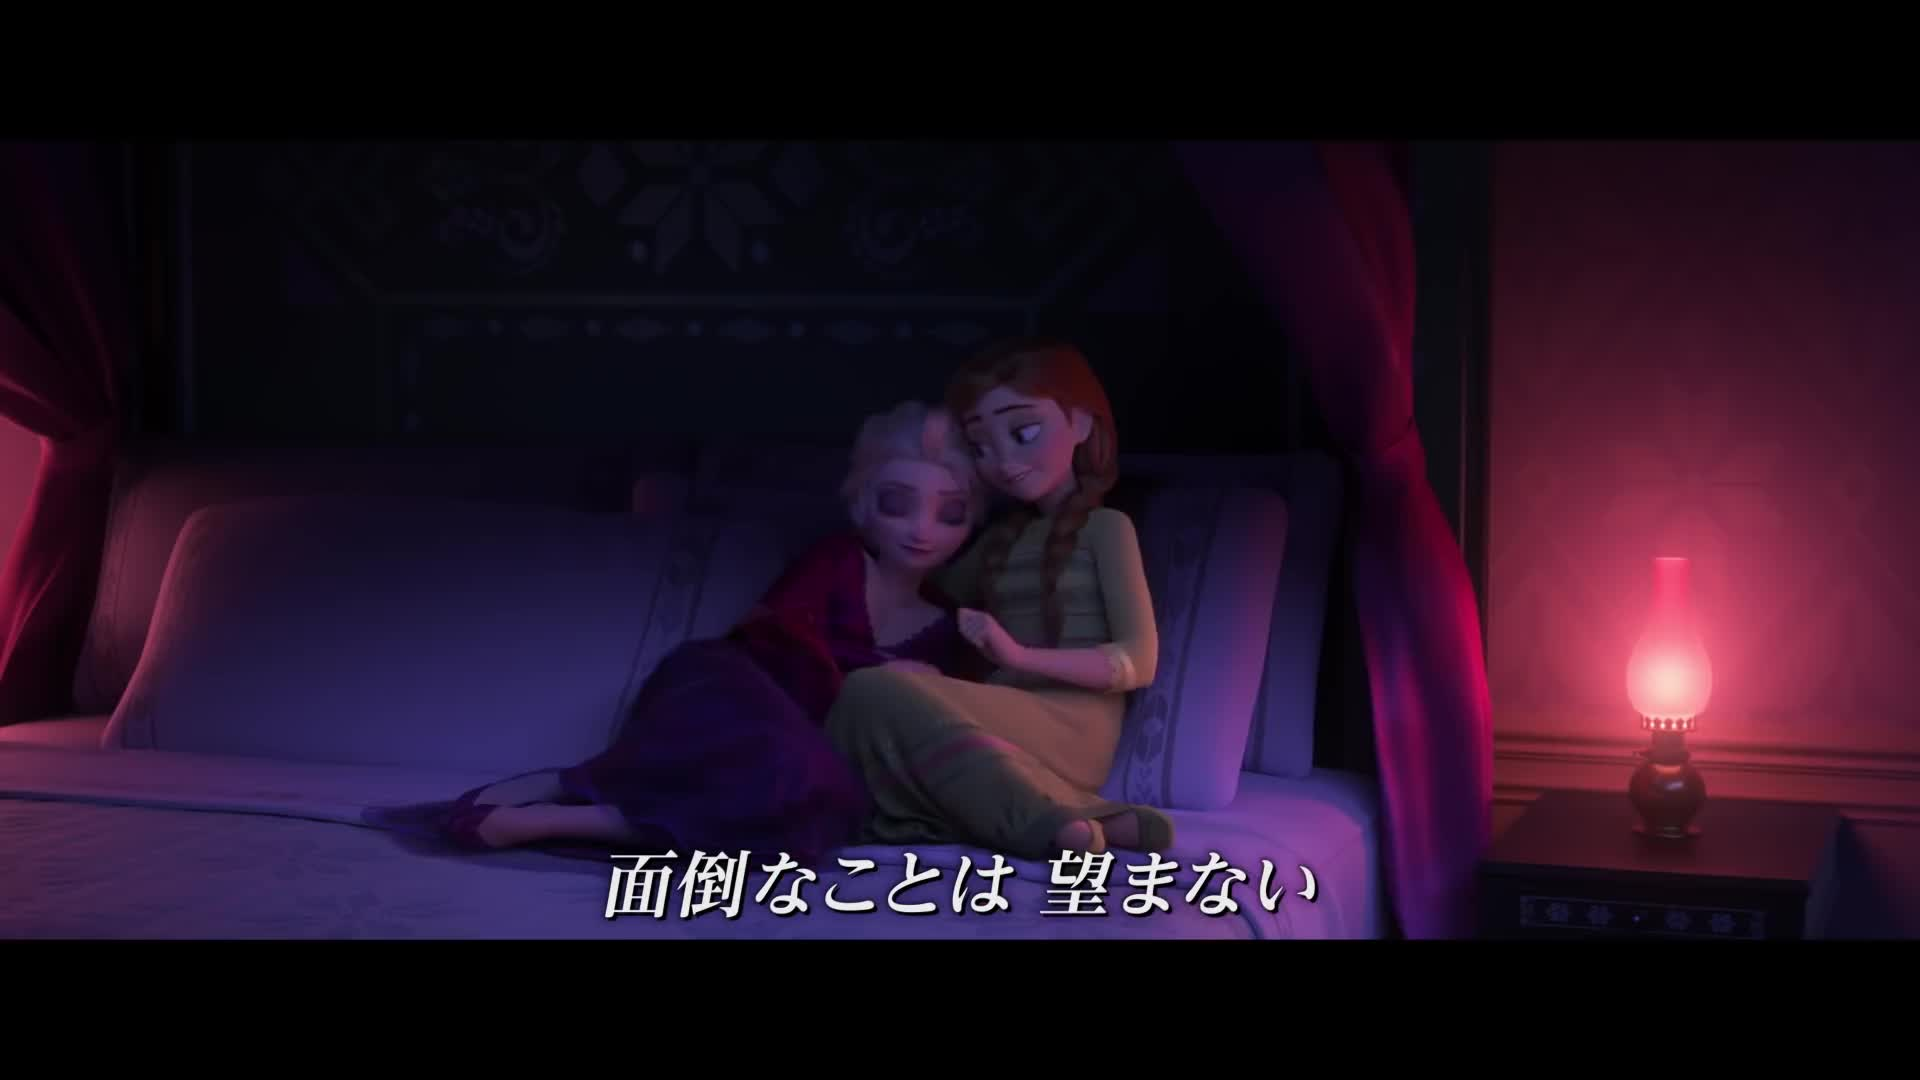 Frozen 2 - International Trailer #1 [HD] screen capture